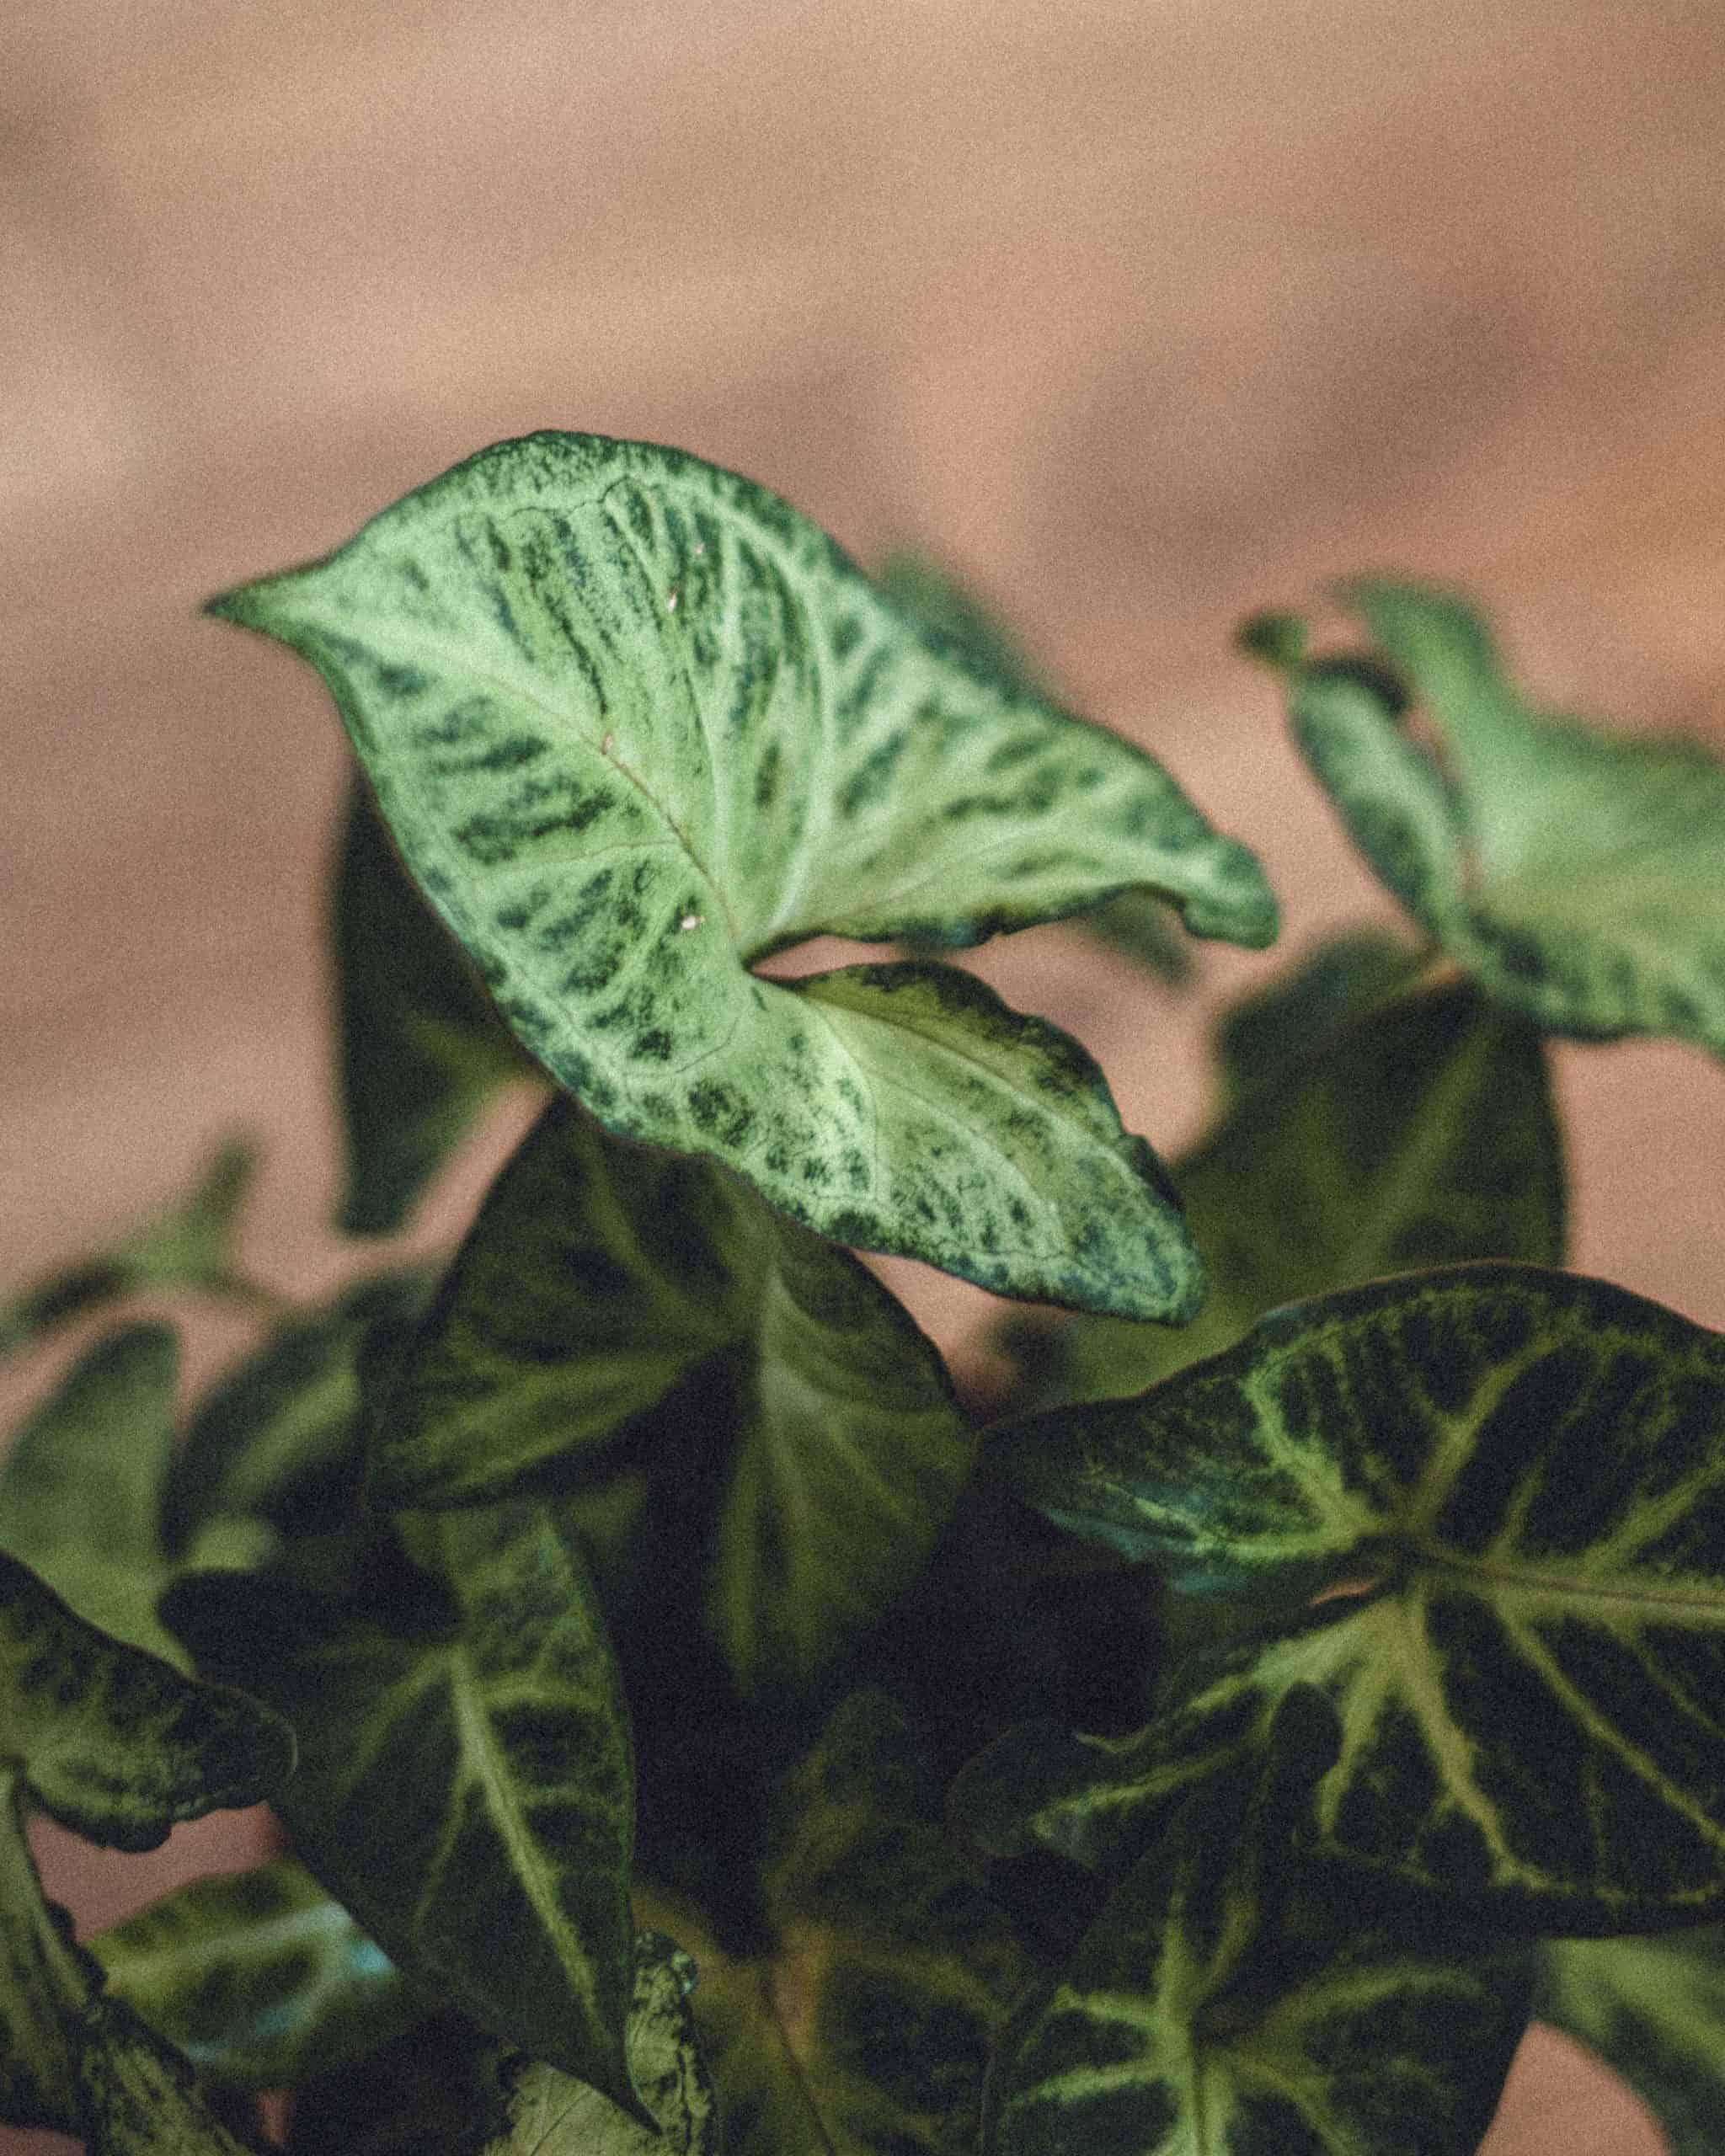 White Butterfly Syngonium Care Guide (Syngonium Podophyllum)